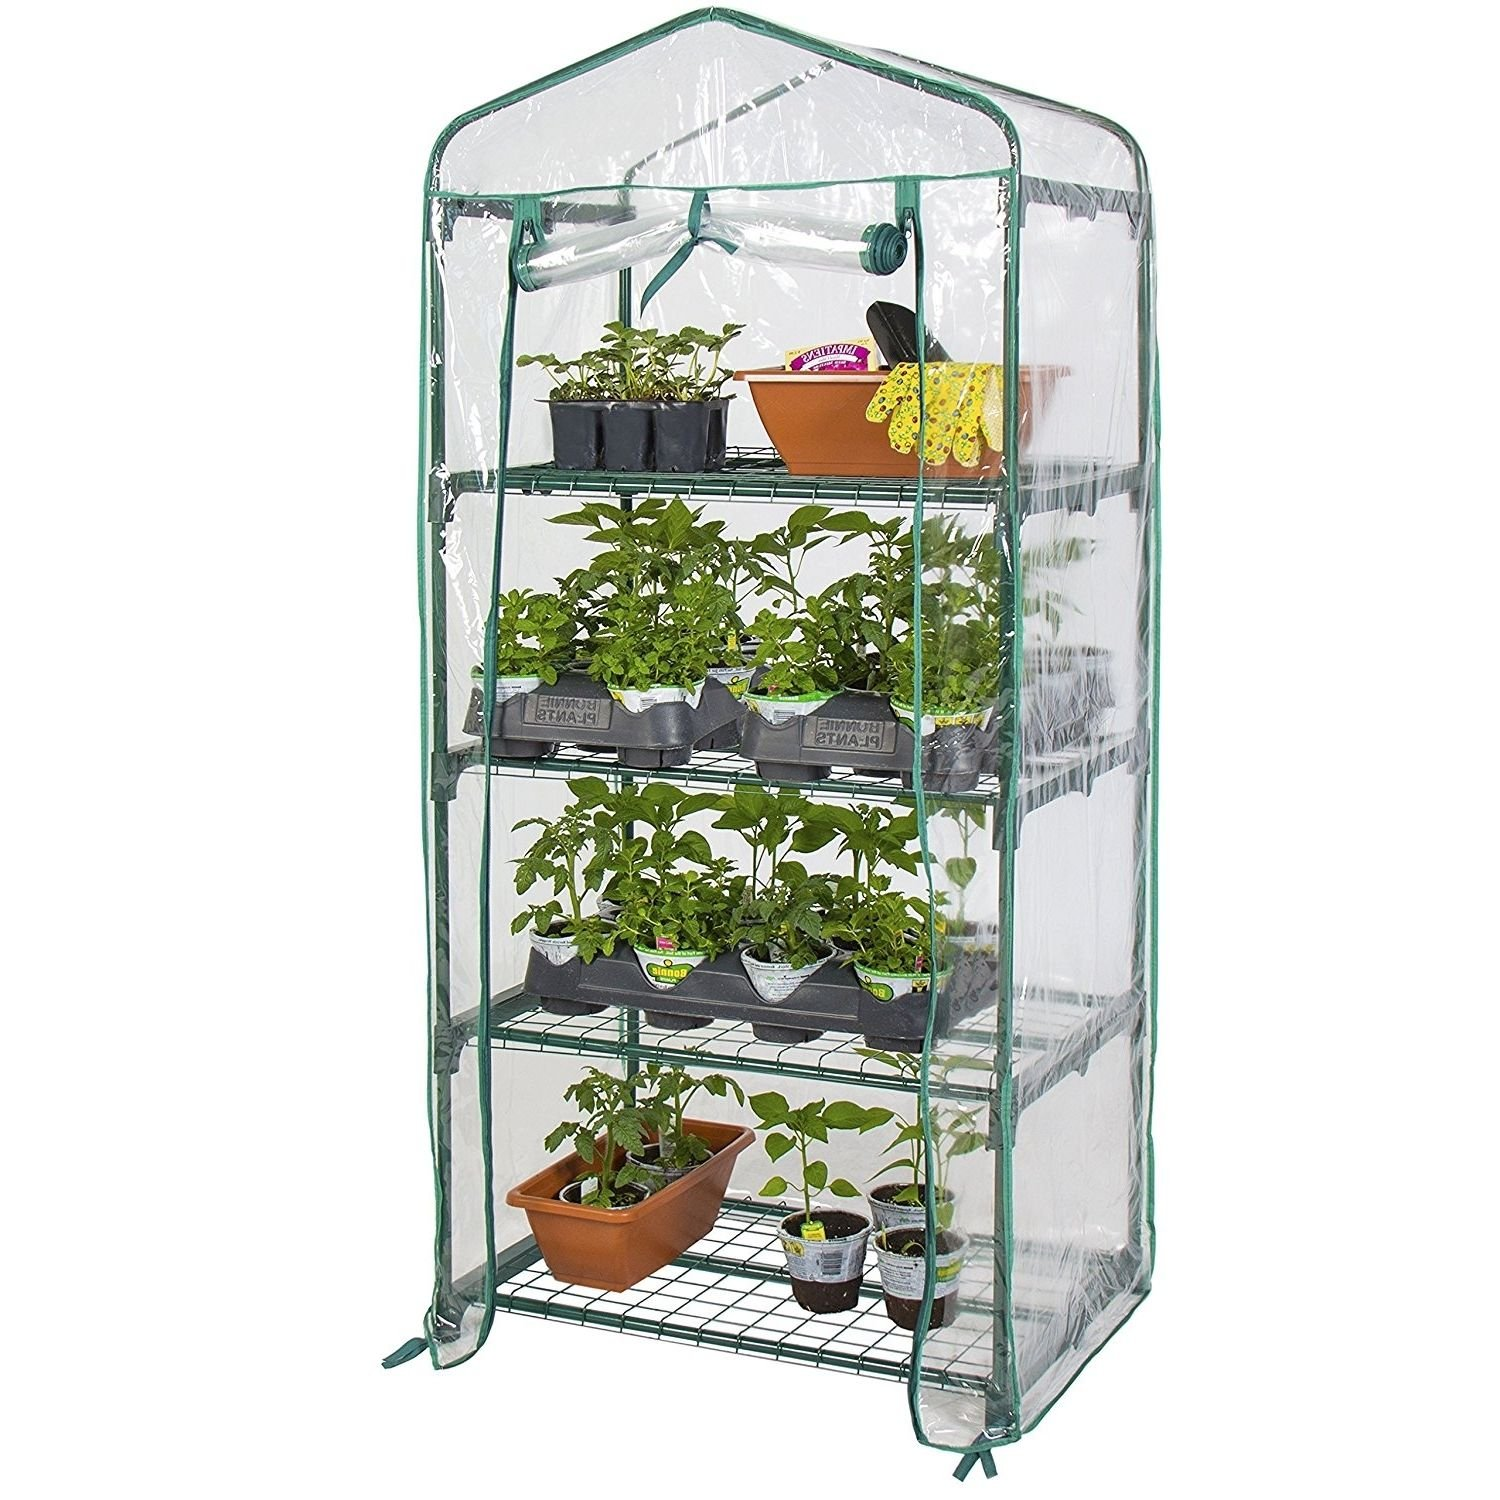 Greenhouses Kits 4Tier Indoor Small Green House For Plants With Clear PVC Cover 27''x 18''x 63''